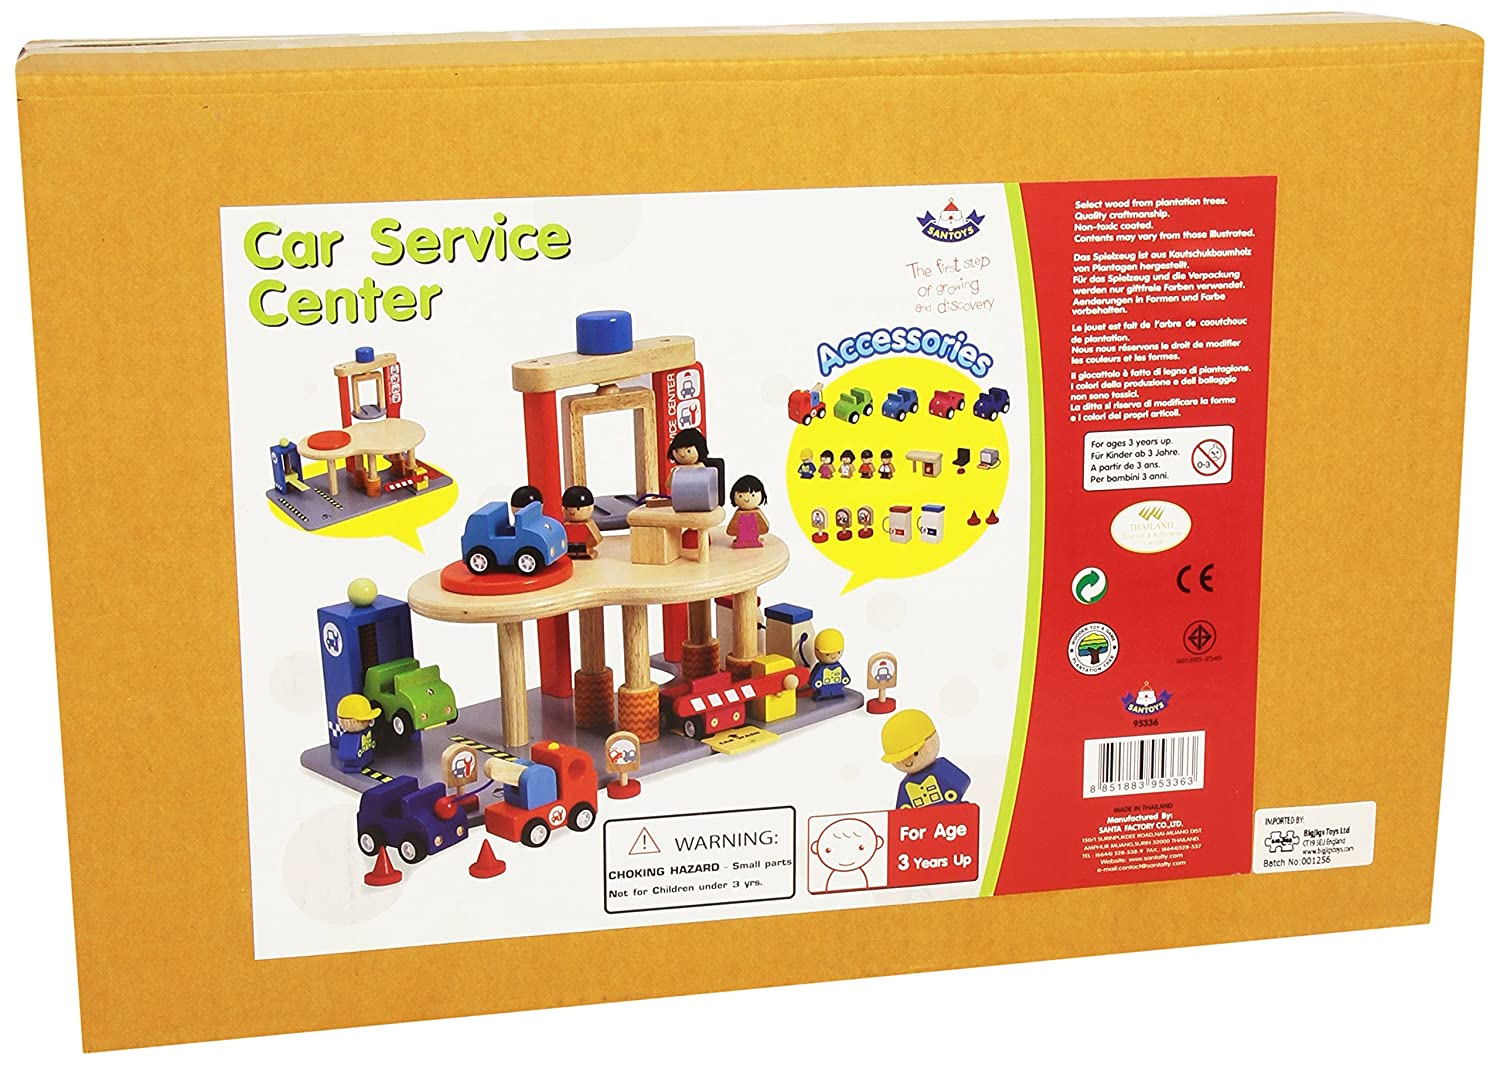 Santoys st336 Auto Service Center